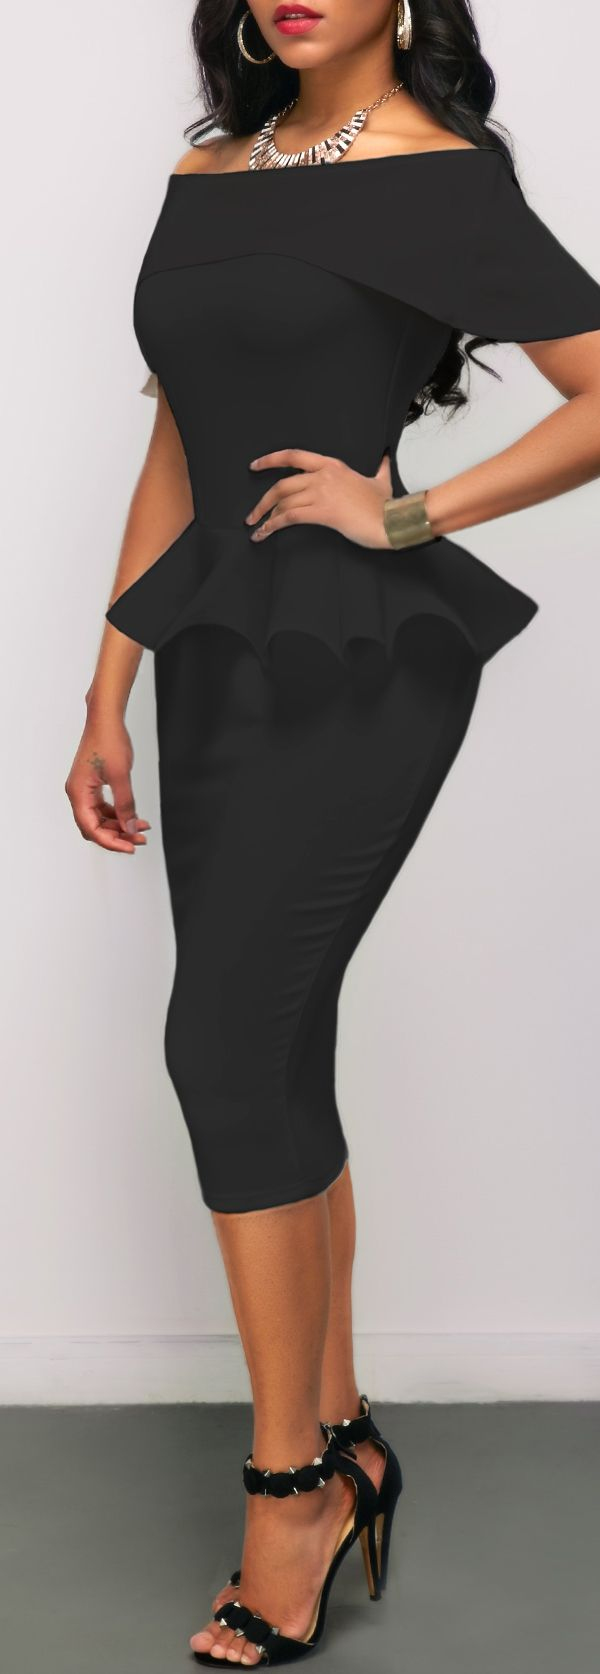 Peplum Waist Black Off the Shoulder Sheath Dress, womens fashion, classy, modest, sexiness, faster shipping, check it out at rosewe.com.